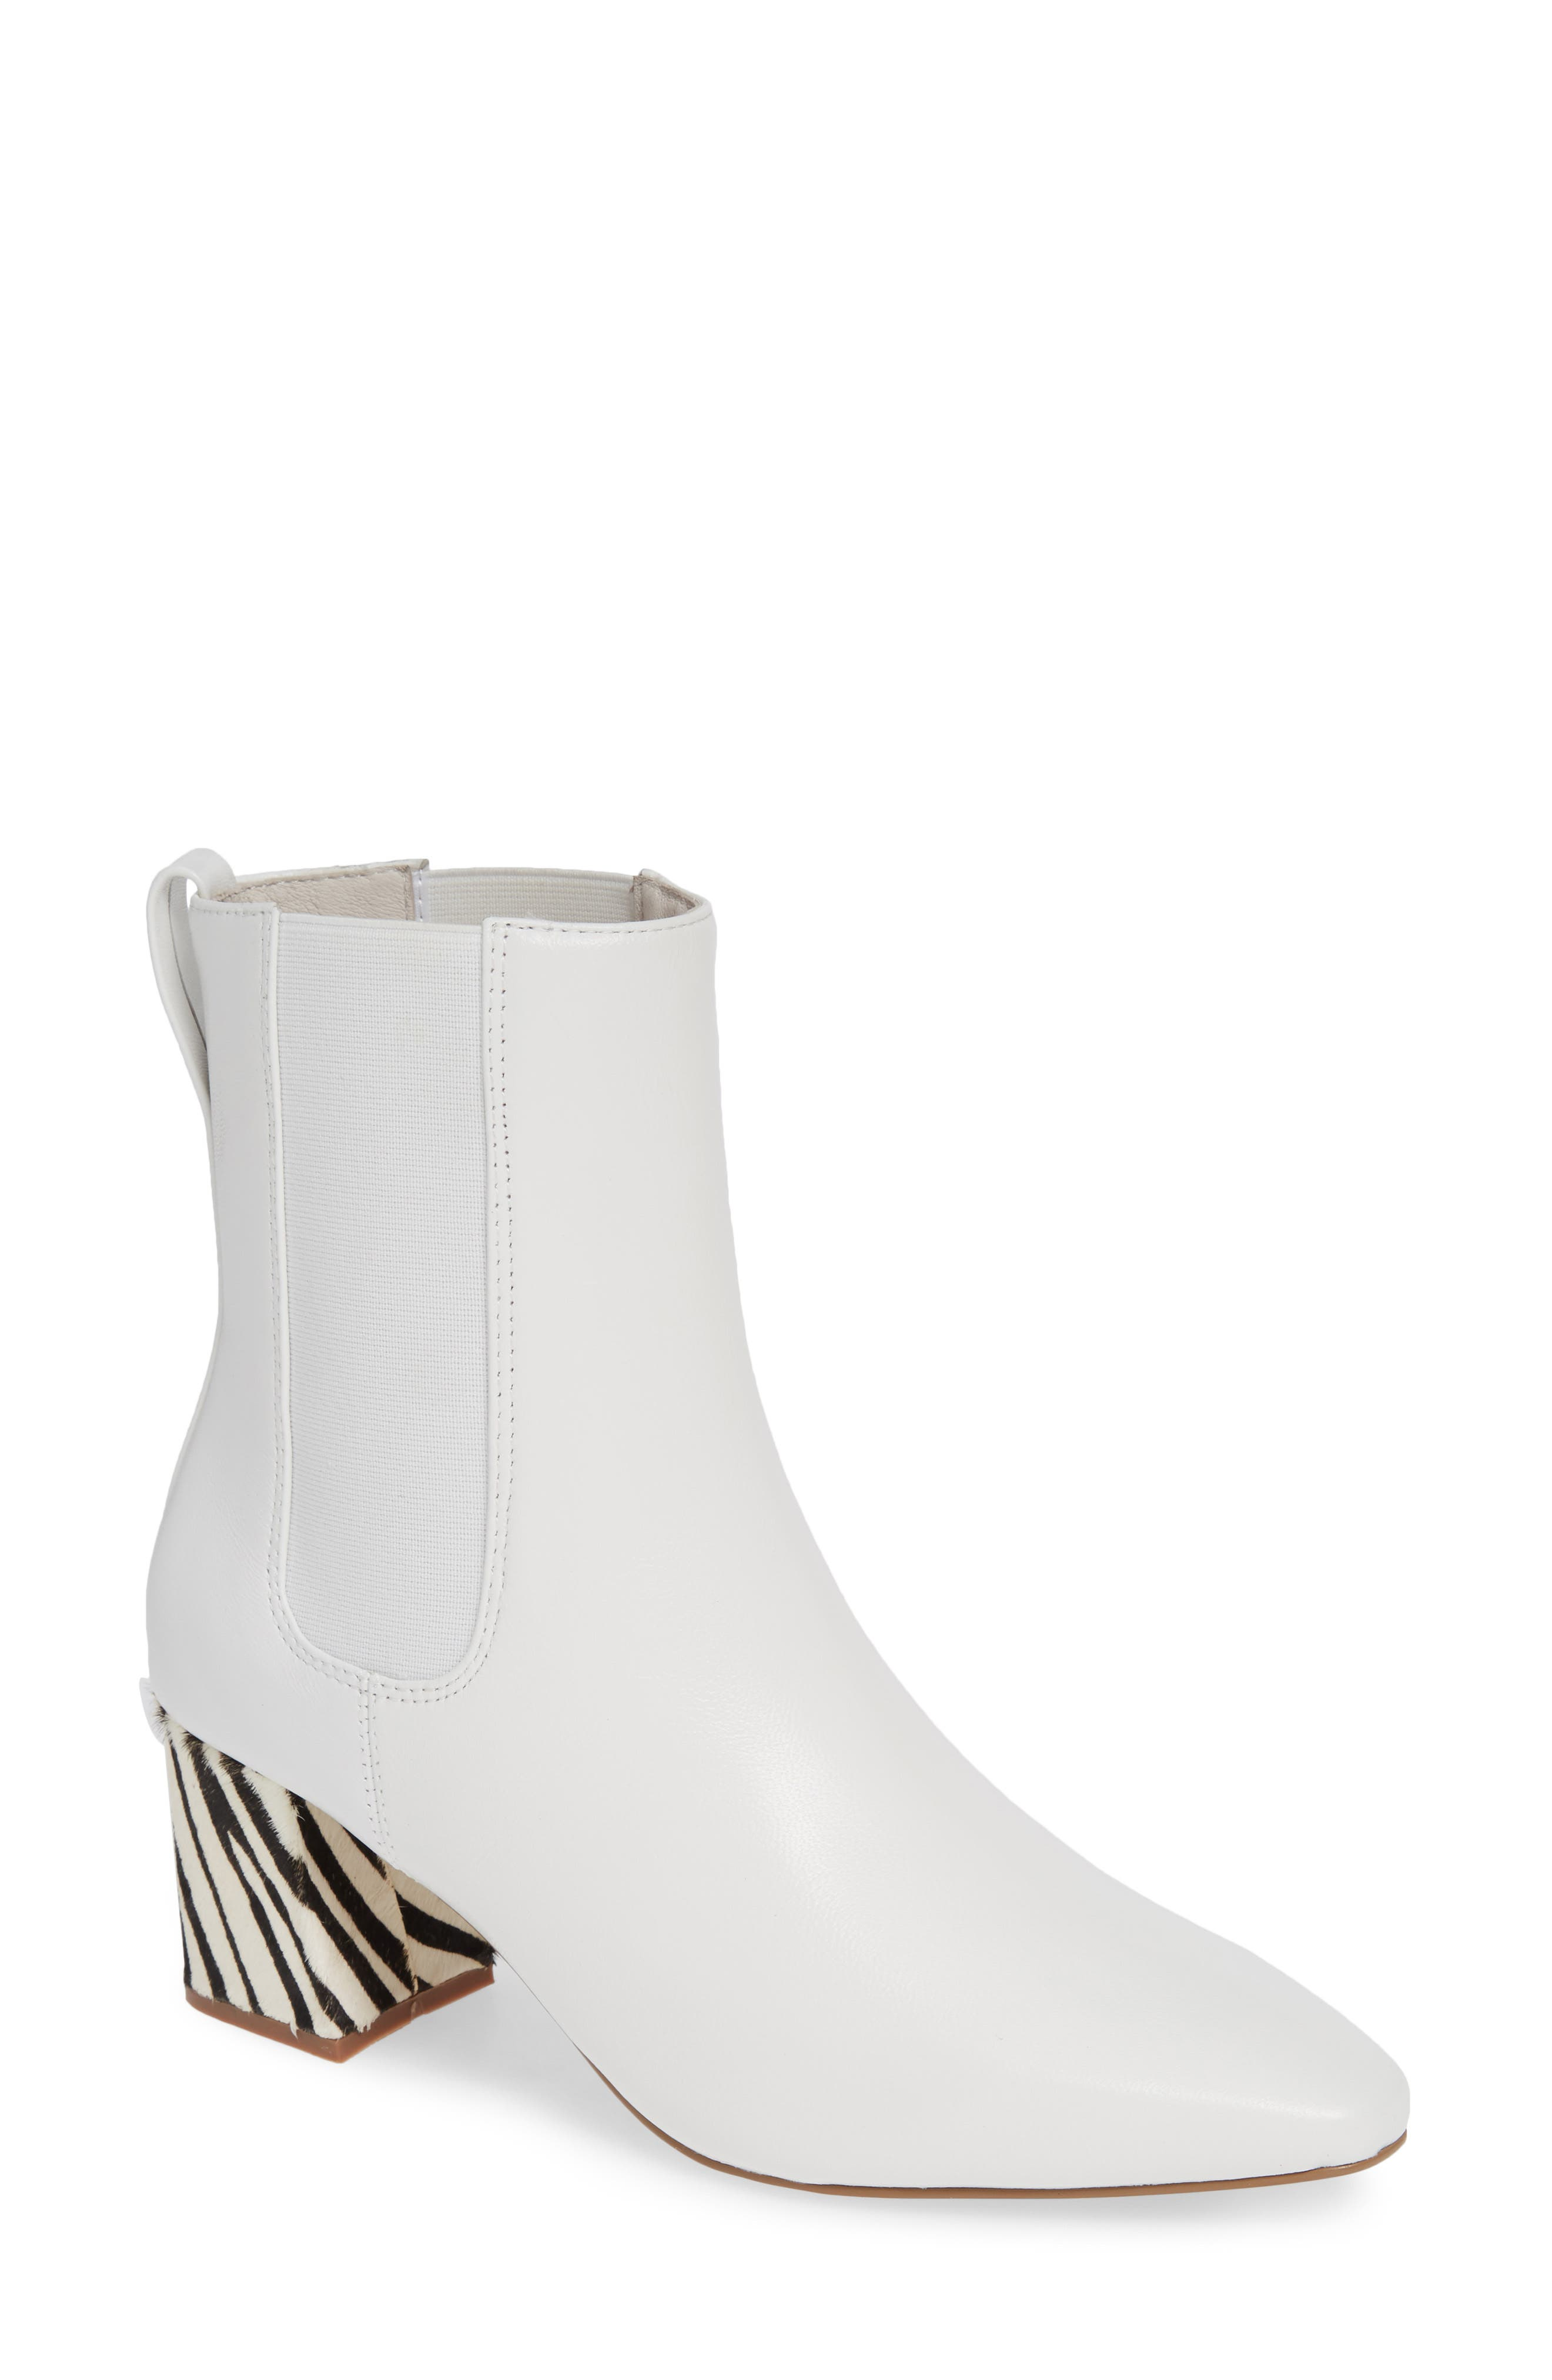 Matisse Off Duty Genuine Calf Hair Chelsea Bootie- White